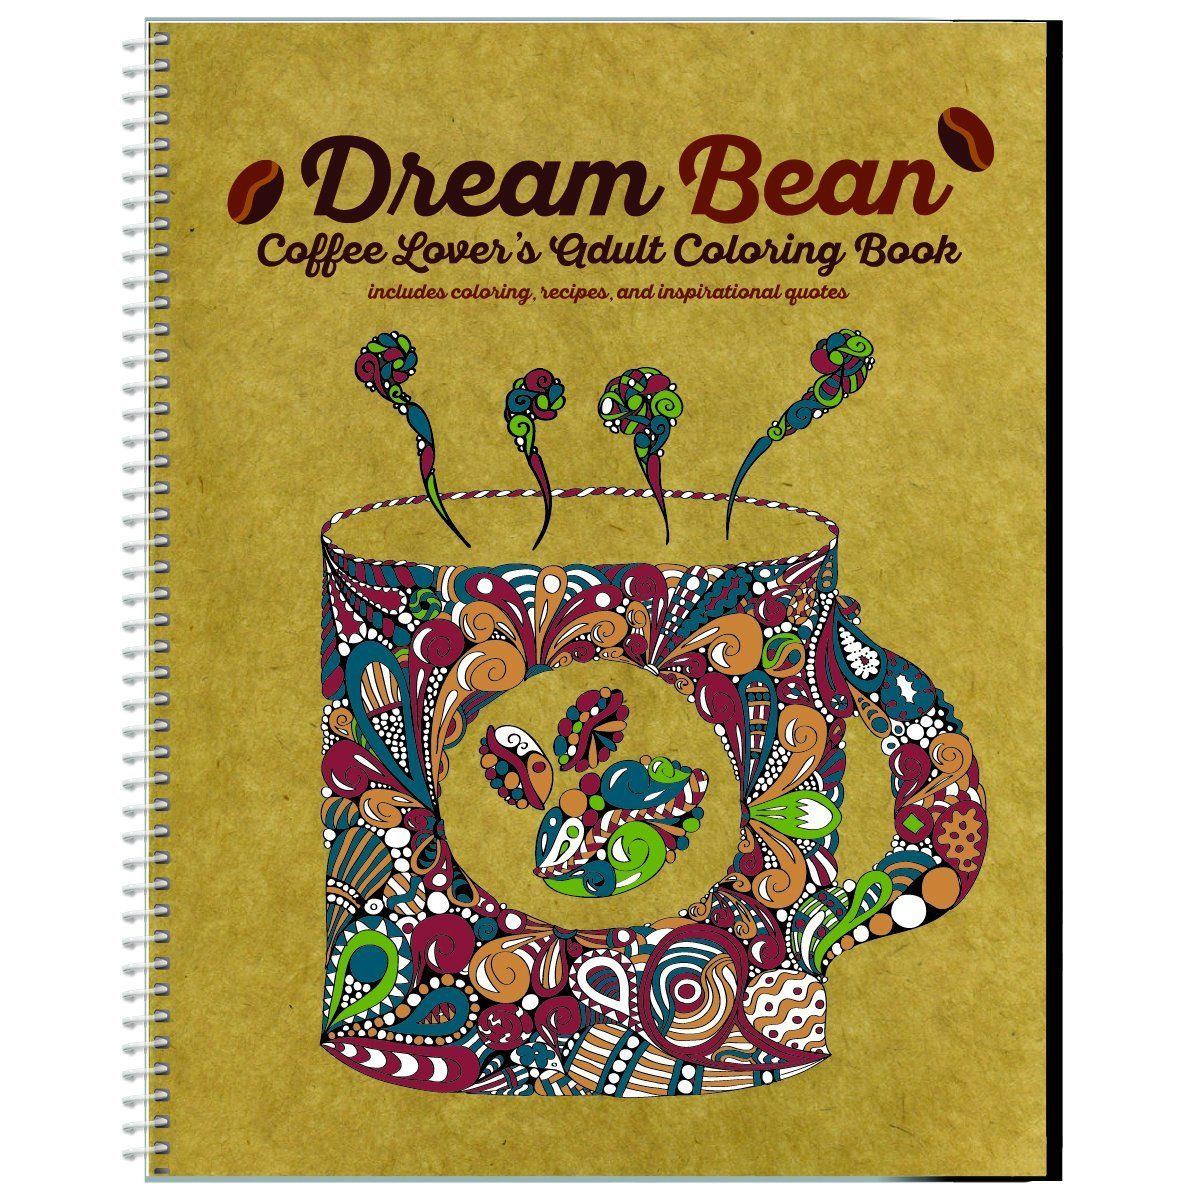 Dream Bean Coffee Lover S Adult Coloring Book Coloring Journal Coloring Books Homework Planner